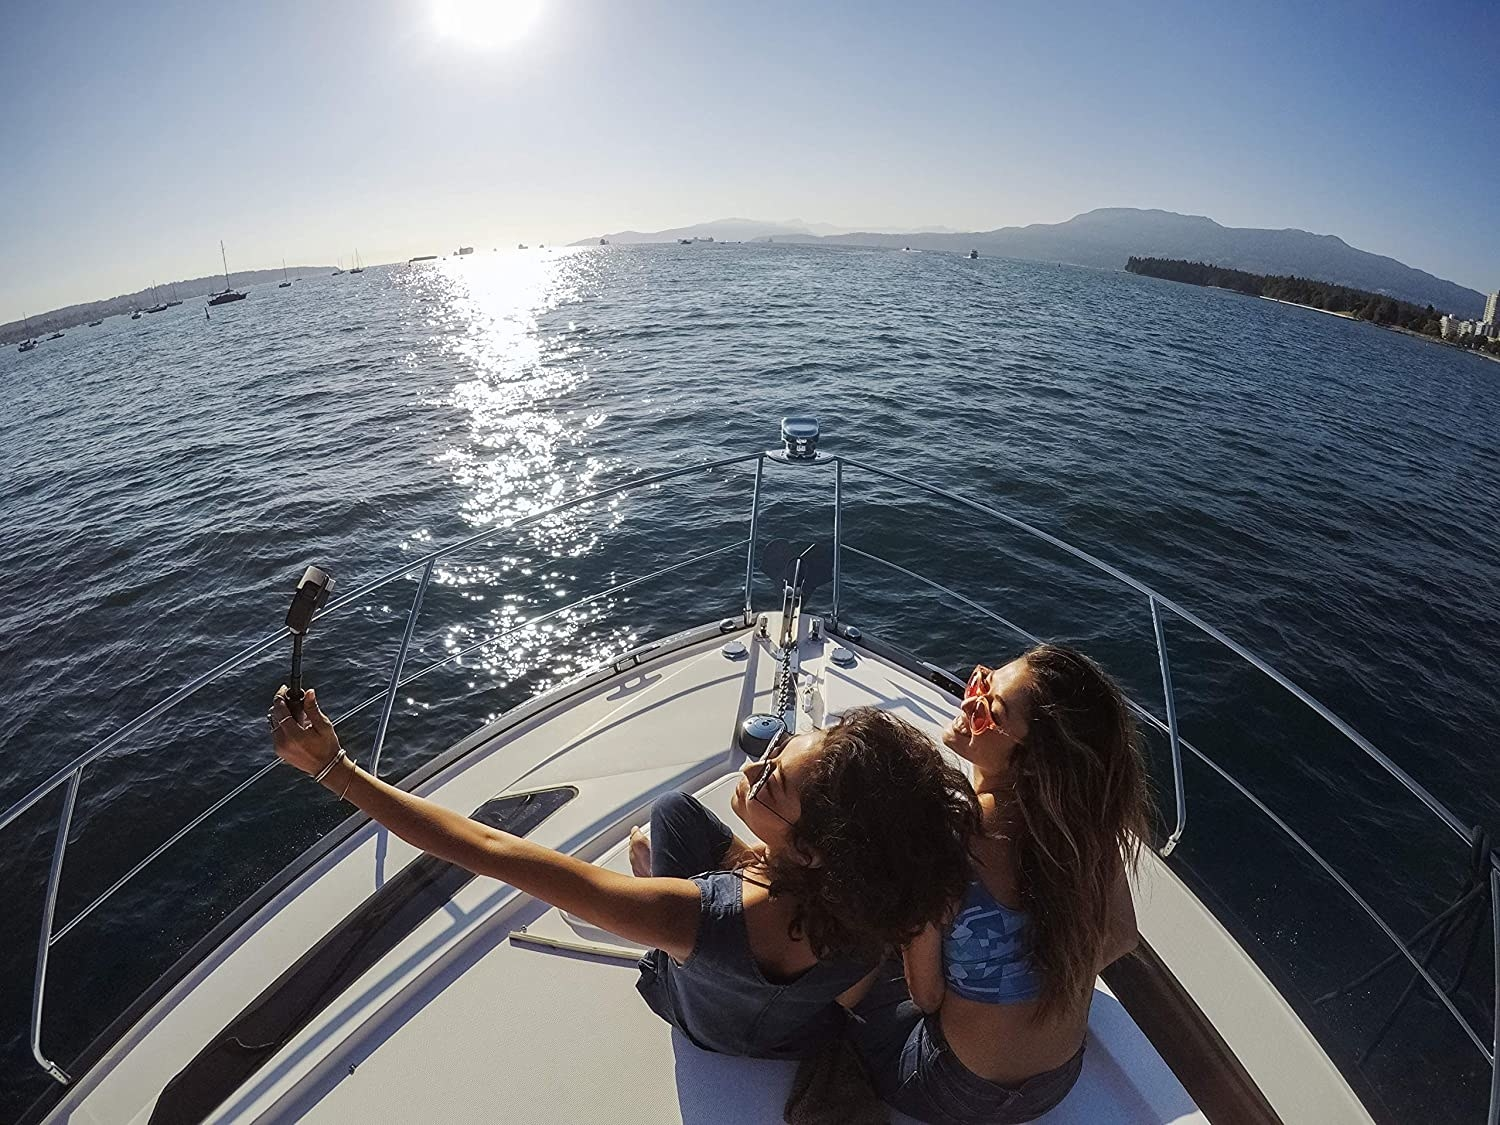 Two people sitting on a boat while one is holding a video camera up to face them